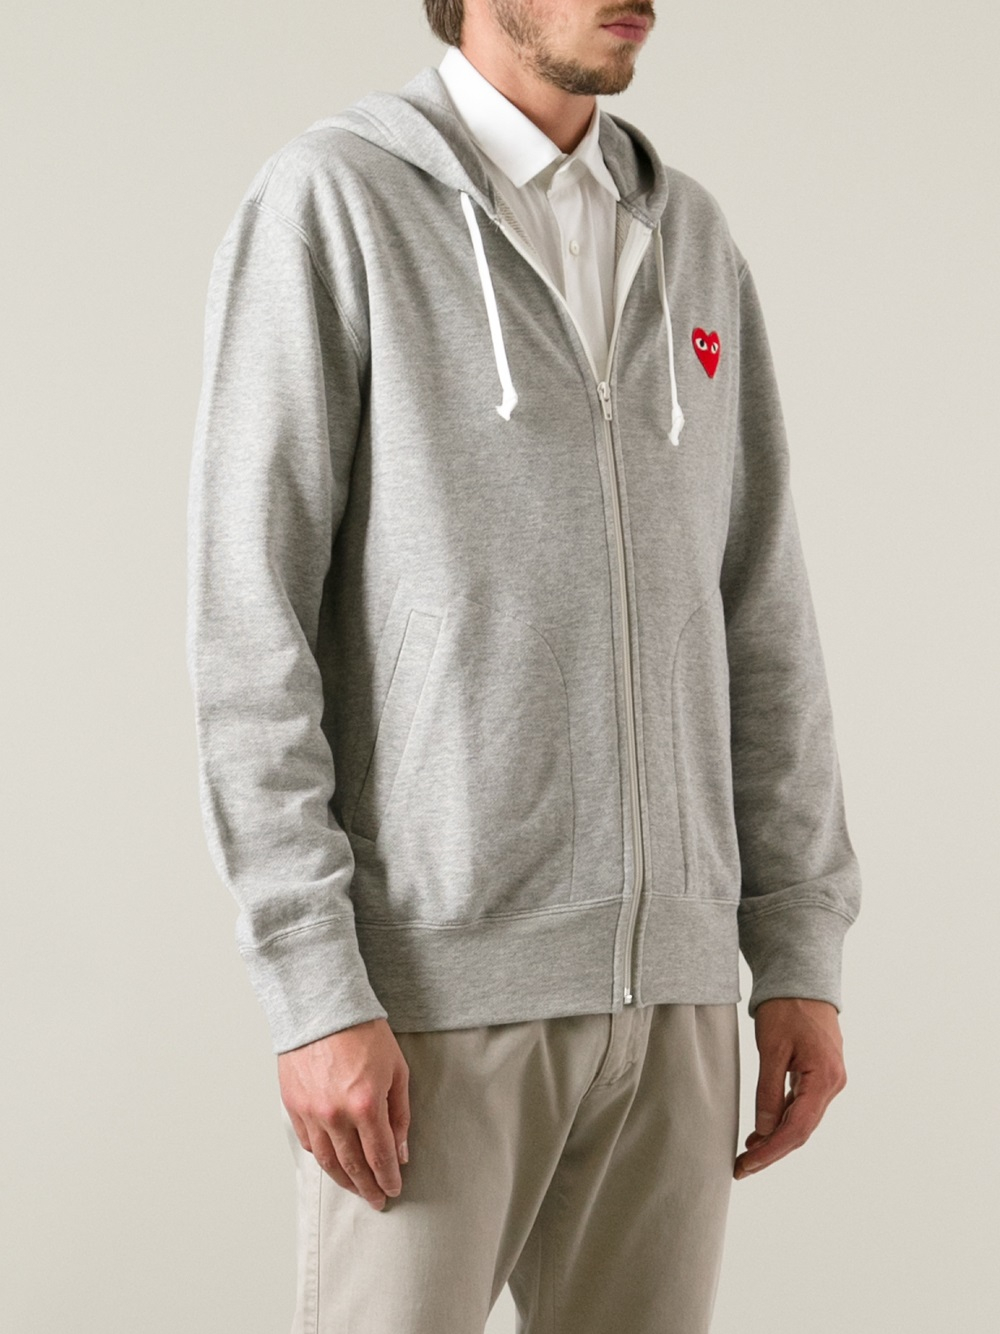 play comme des gar ons embroidered heart hoodie in gray. Black Bedroom Furniture Sets. Home Design Ideas